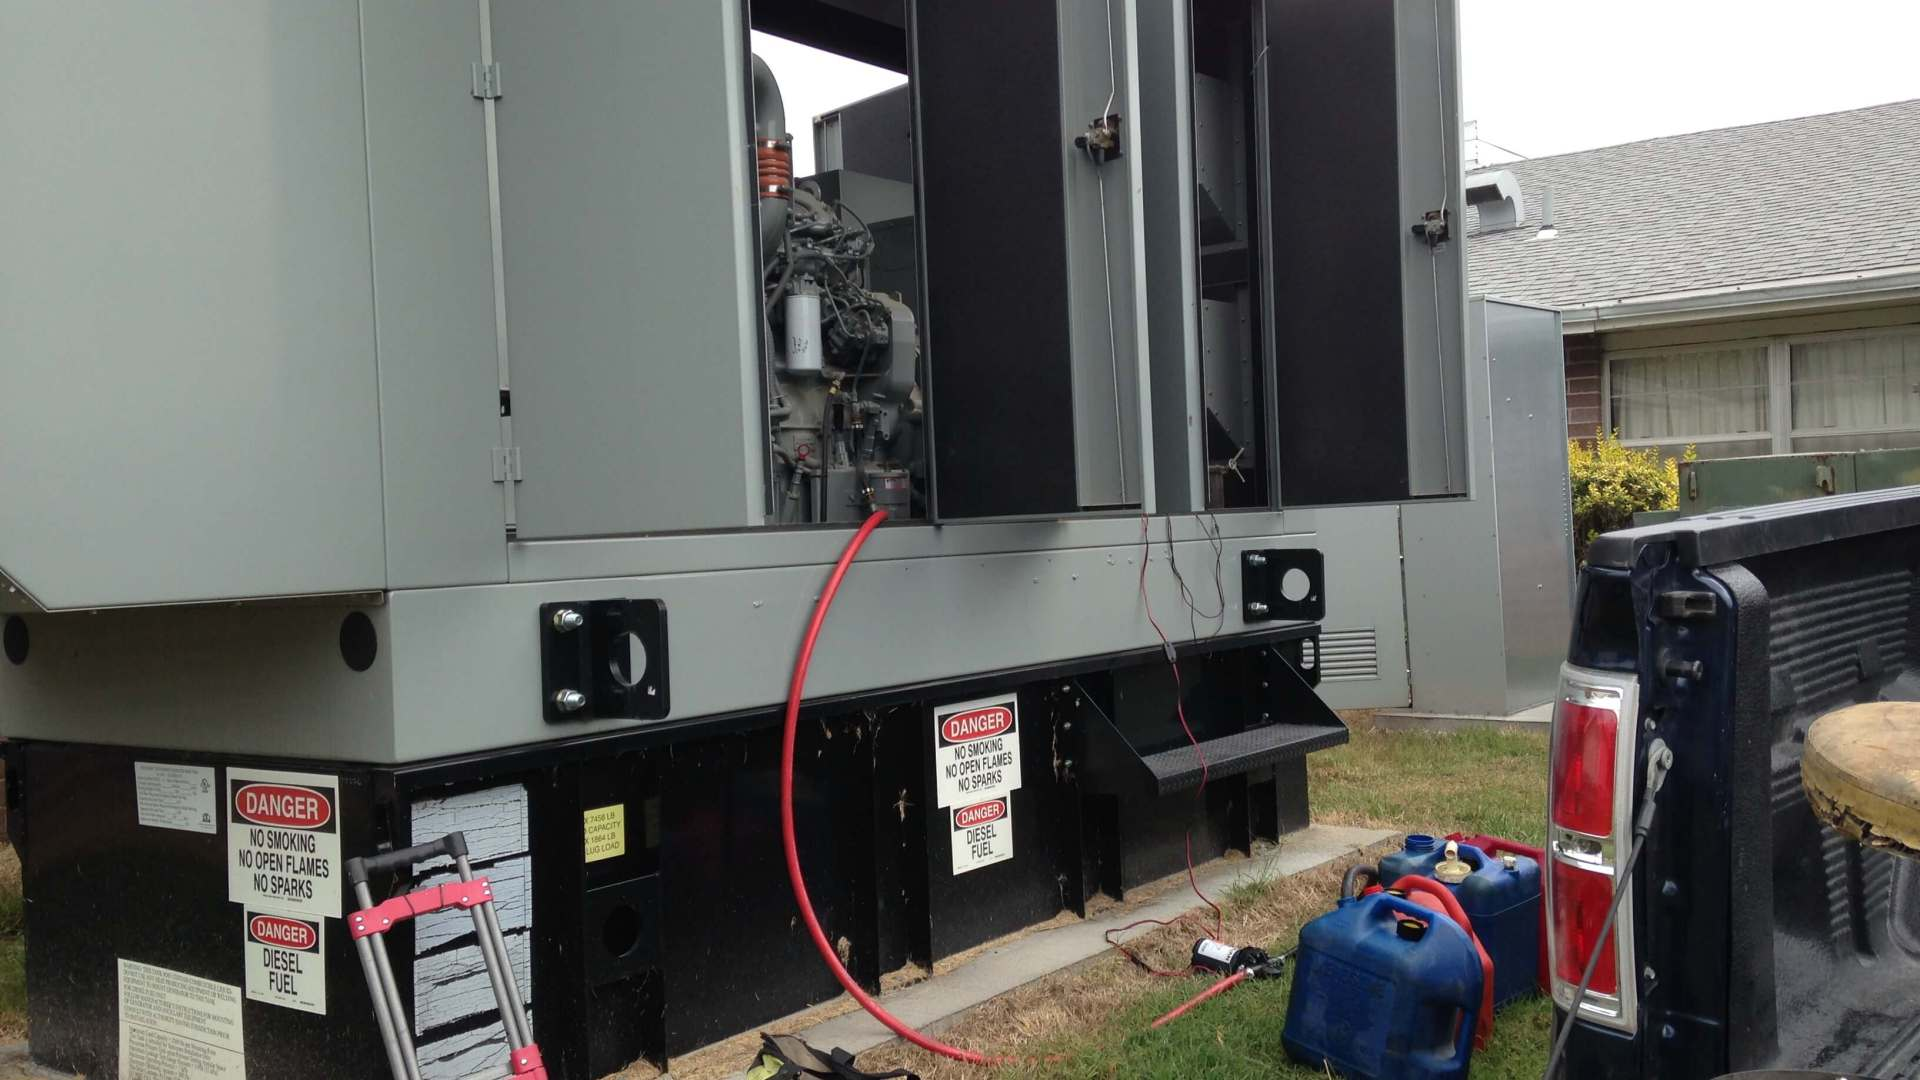 Emergency Generator Service (also known as backup and/or standby)